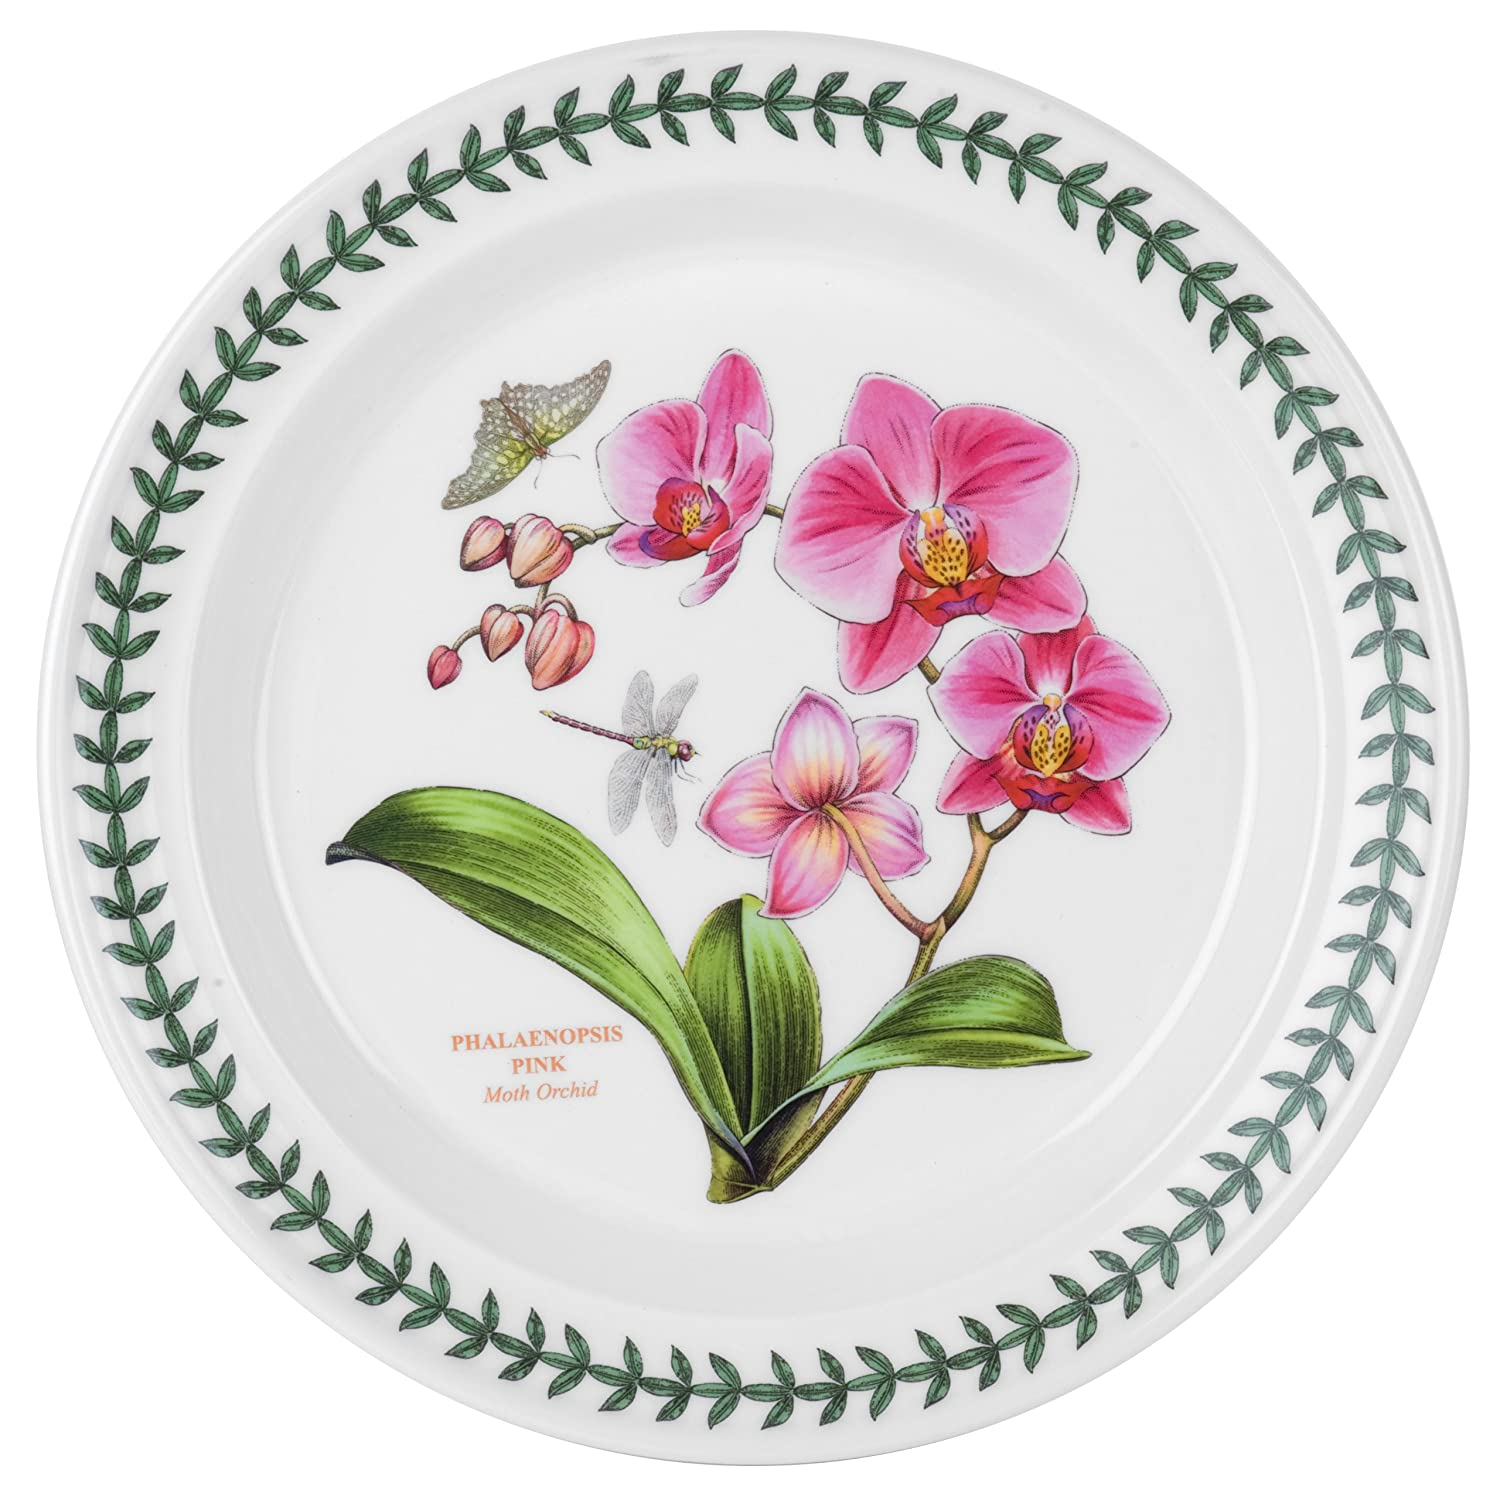 Amazon.com | Portmeirion Exotic Botanic Garden Dinner Plate with Orchid Motif Dinner Plates  sc 1 st  Amazon.com & Amazon.com | Portmeirion Exotic Botanic Garden Dinner Plate with ...